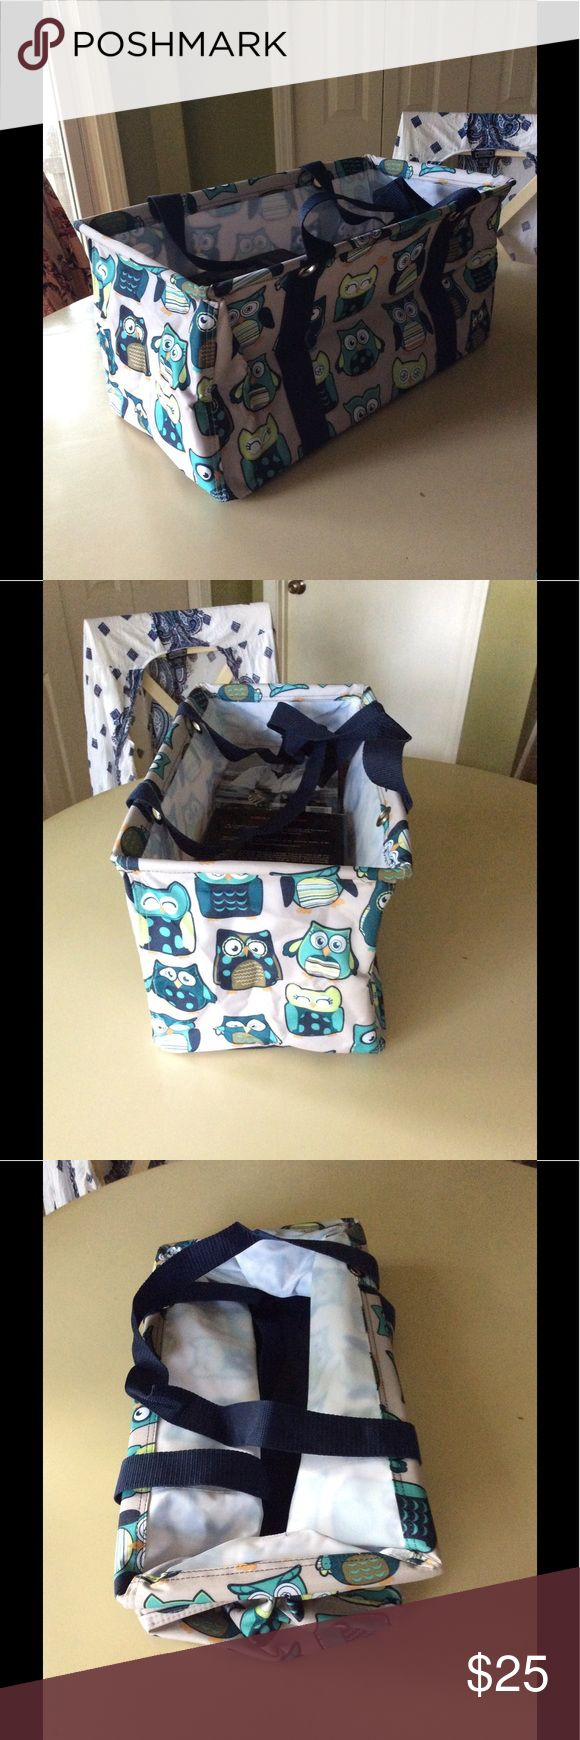 Thirty-One Owl Print Deluxe Utility Tote Bag Thirty One large carry all rectangle canvas utility tote with blue handles. New with original bag packaging. Put books in it to show how much it can hold when full, but it is brand new, never used. Thirty One Bags Totes